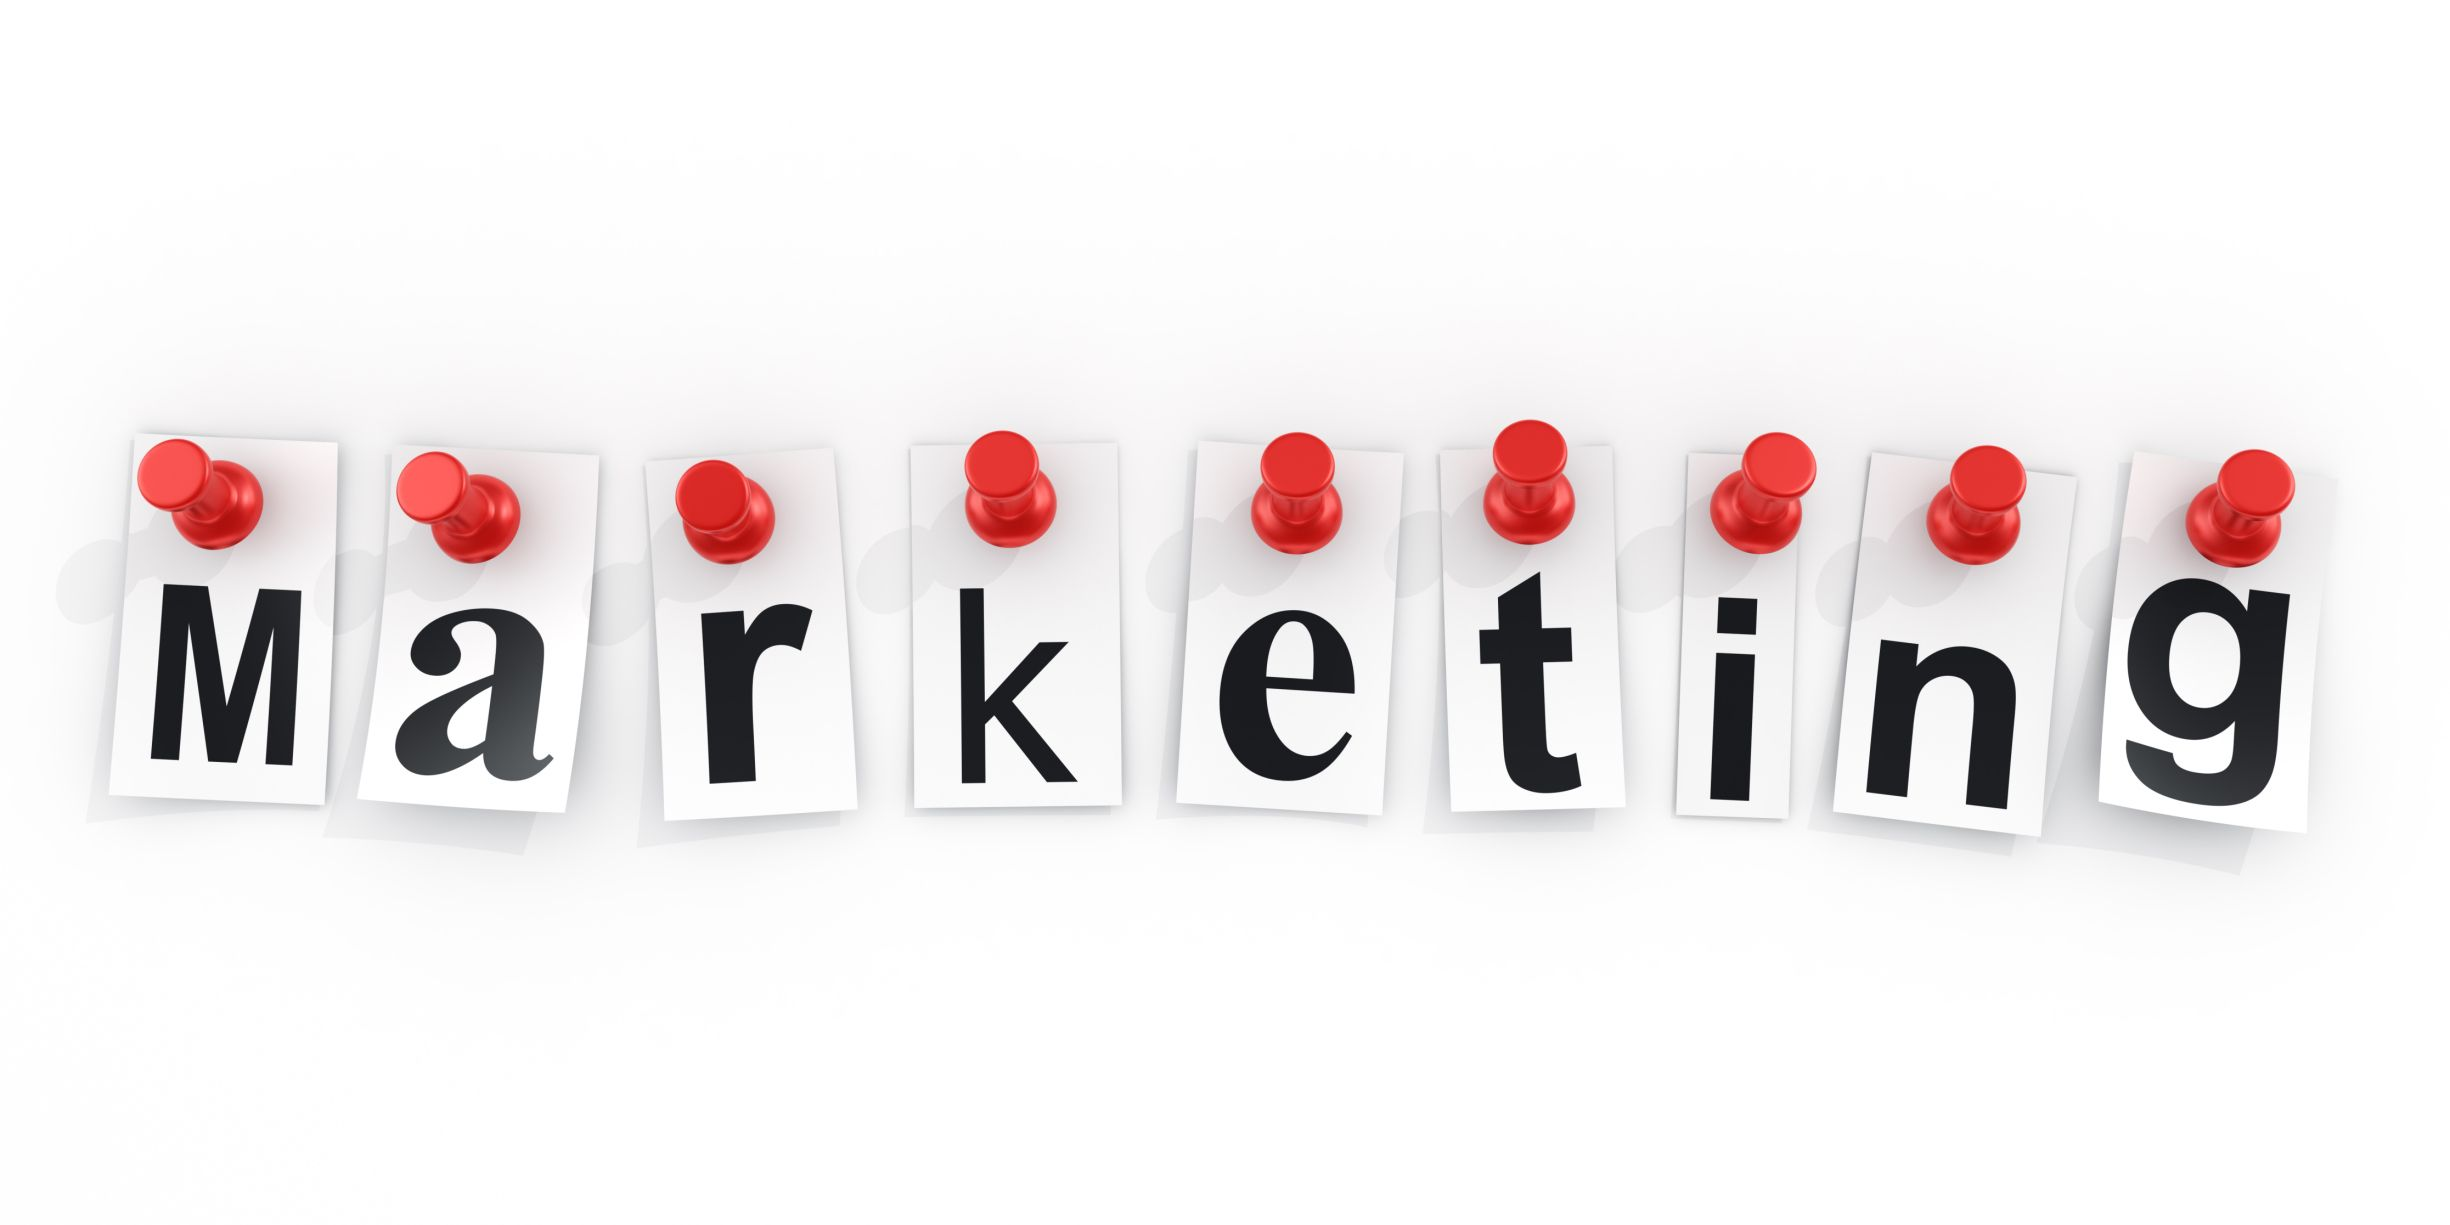 Marketing Manager Jobs in London | Strike-Jobs